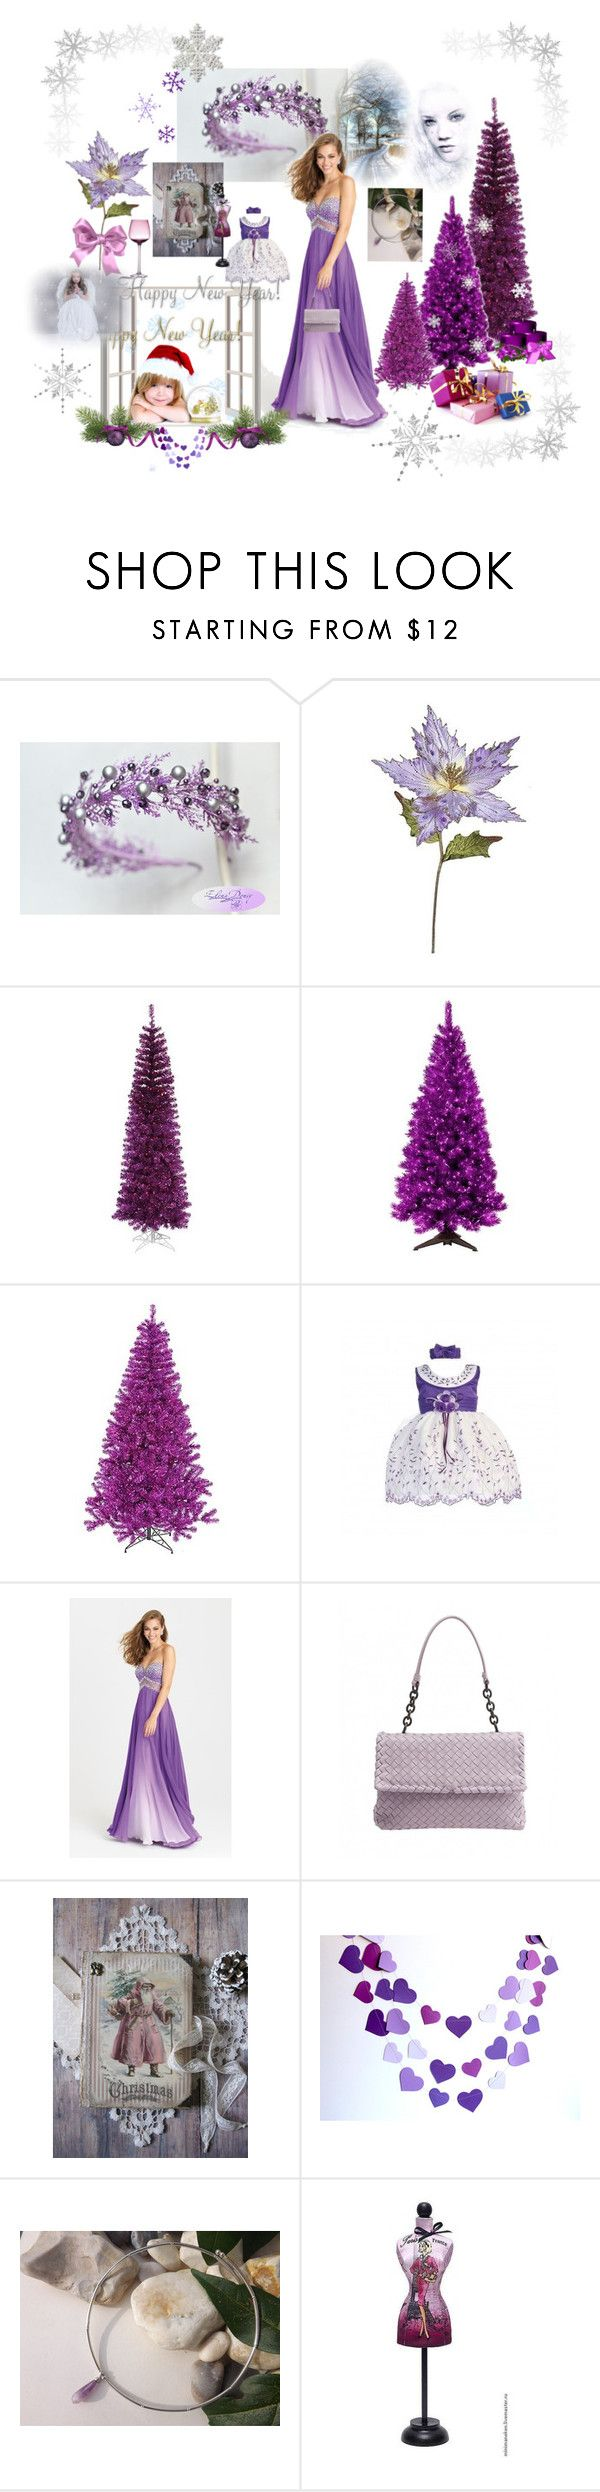 """Happy New Year"" by vualia ❤ liked on Polyvore featuring General Foam, Betty Jackson, Madison James, Bottega Veneta, Christmas, gifts, newyear, purplechristmas and purplecrown"